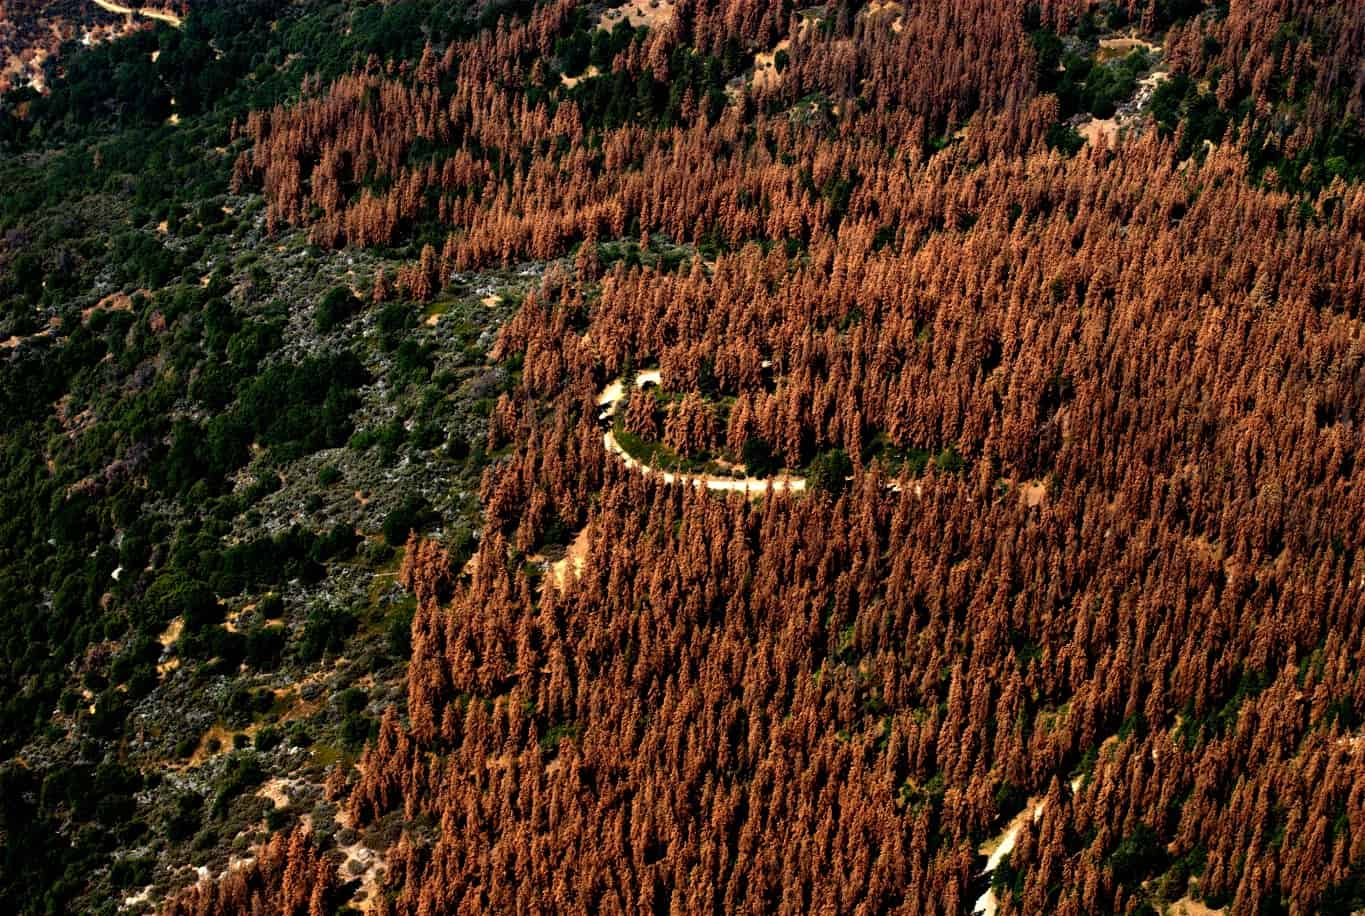 Aerial image of tree mortality due to bark beetles.